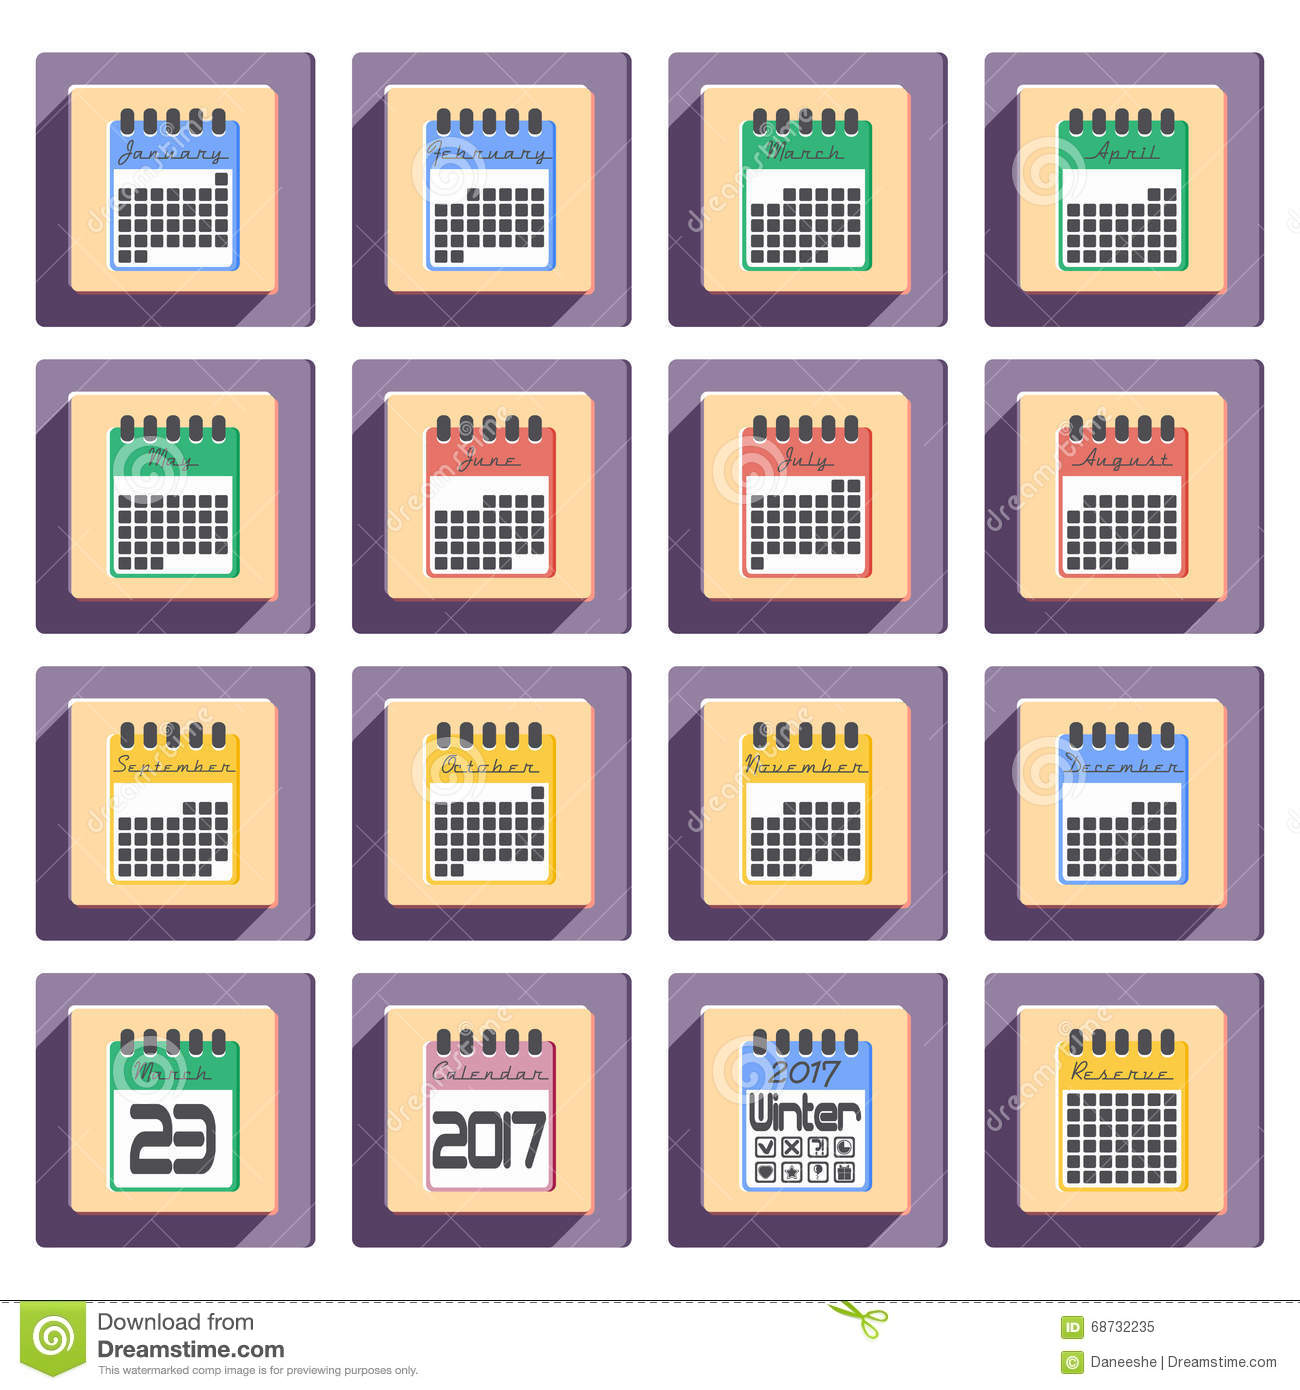 Calendar Month Illustration : Calendar icons set for year in flat style stock